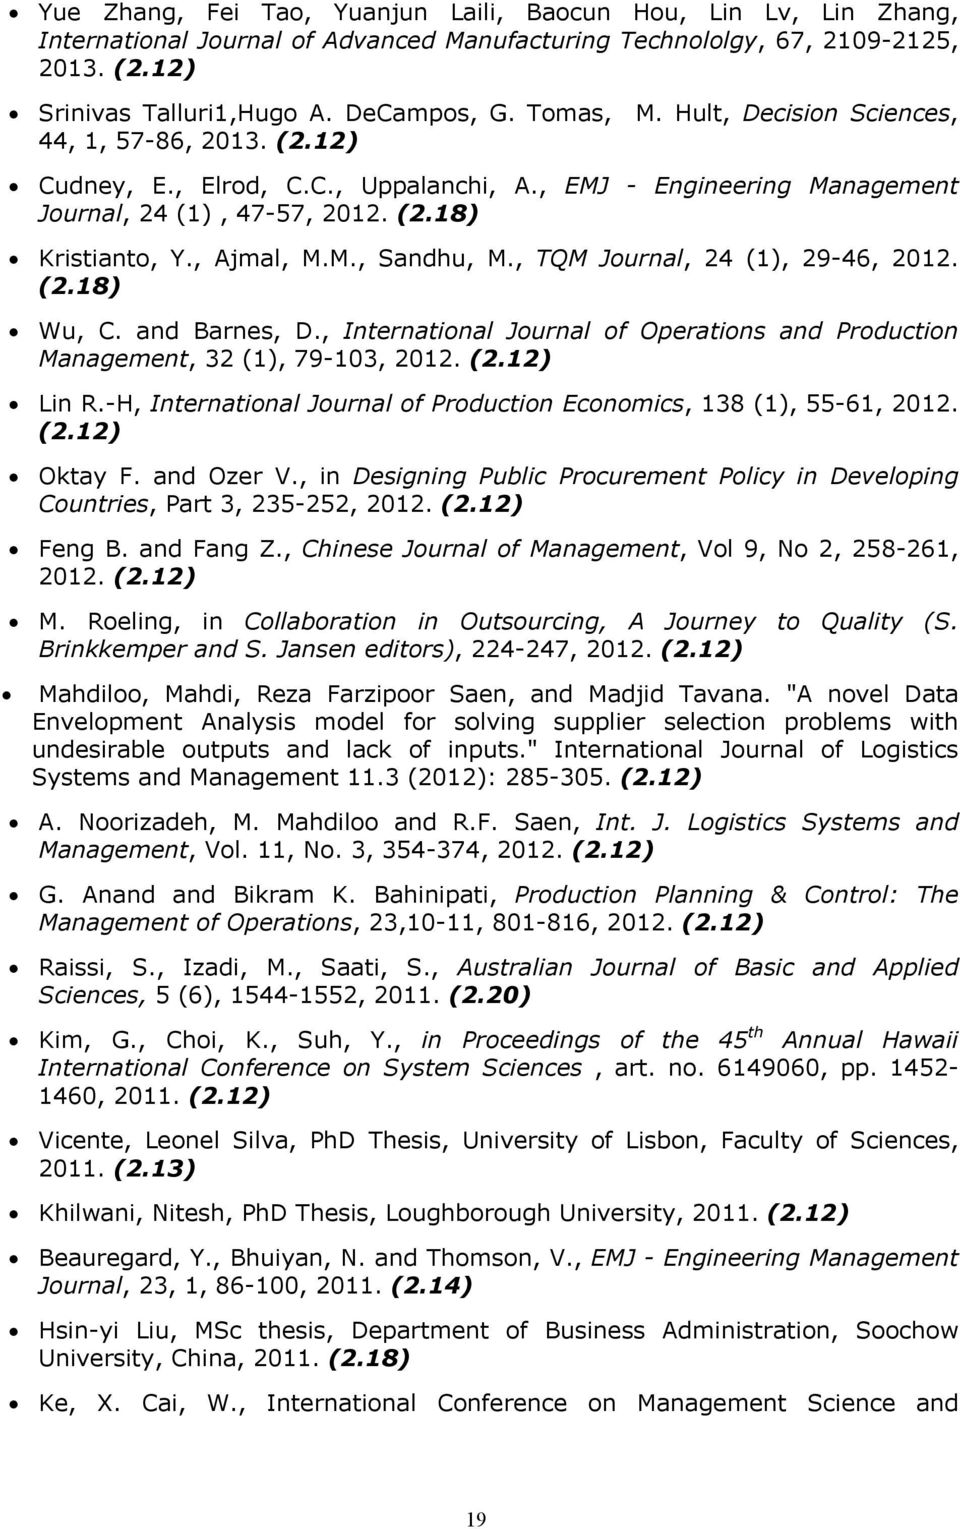 , TQM Journal, 24 (1), 29-46, 2012. (2.18) Wu, C. and Barnes, D., International Journal of Operations and Production Management, 32 (1), 79-103, 2012. (2.12) Lin R.